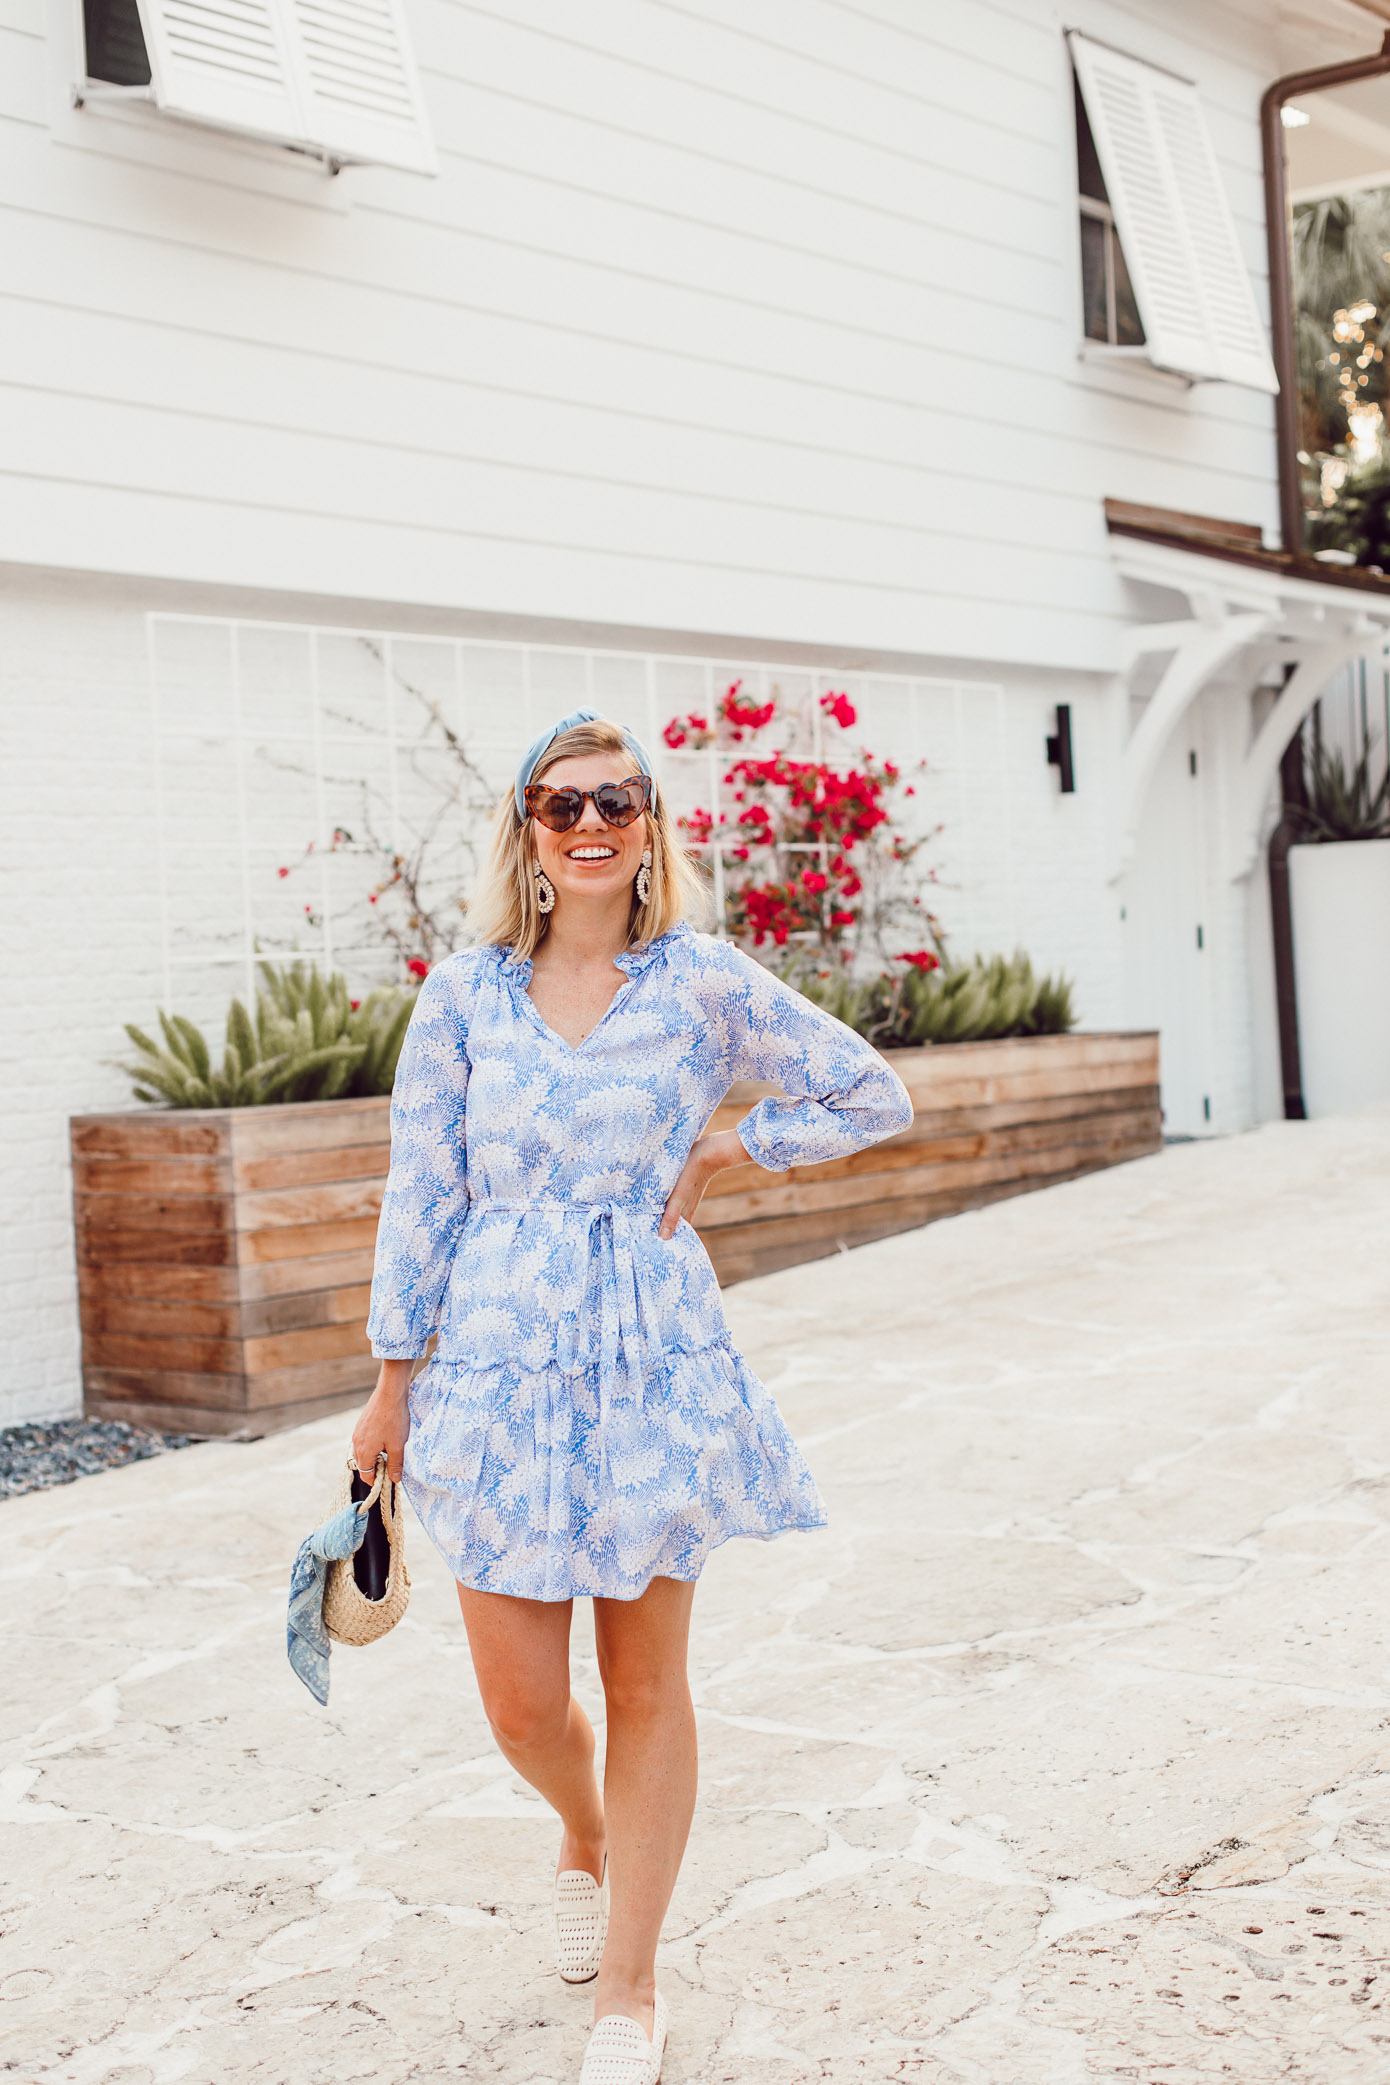 Lightweight Summer Dresses To Buy Now | Louella Reese